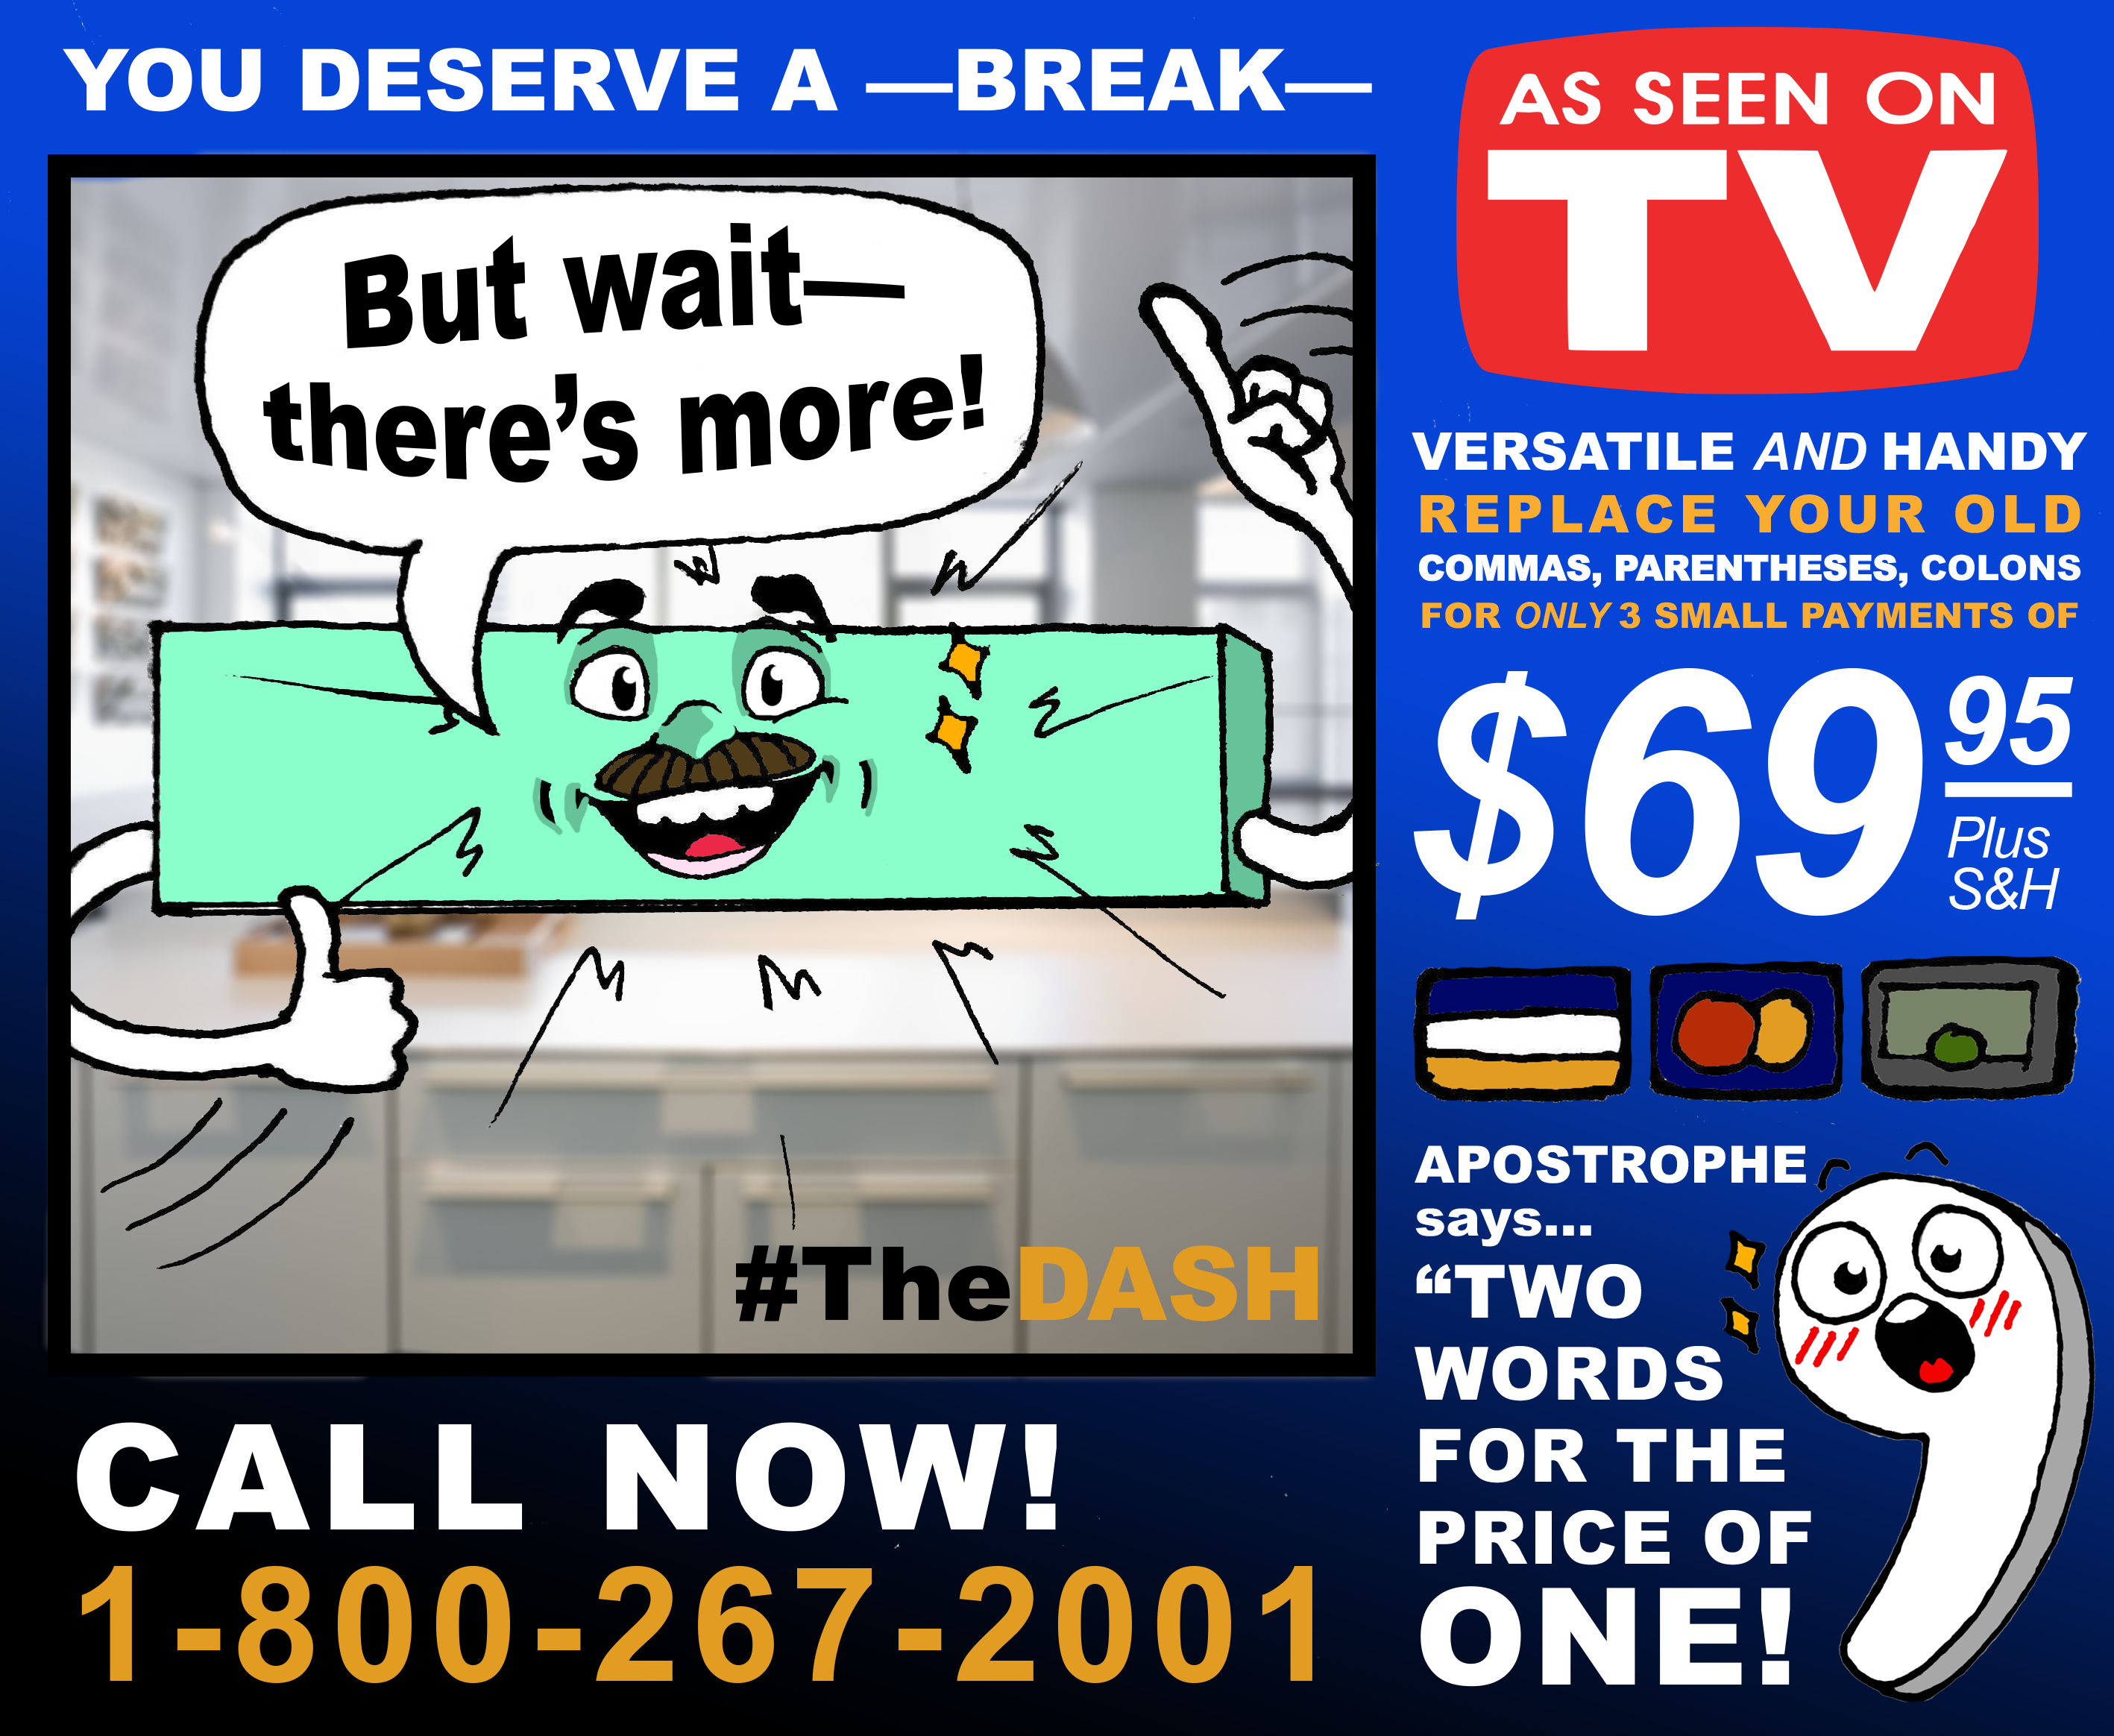 TV infomercial spoof with cartoon dash and apostrophe selling punctuation marks